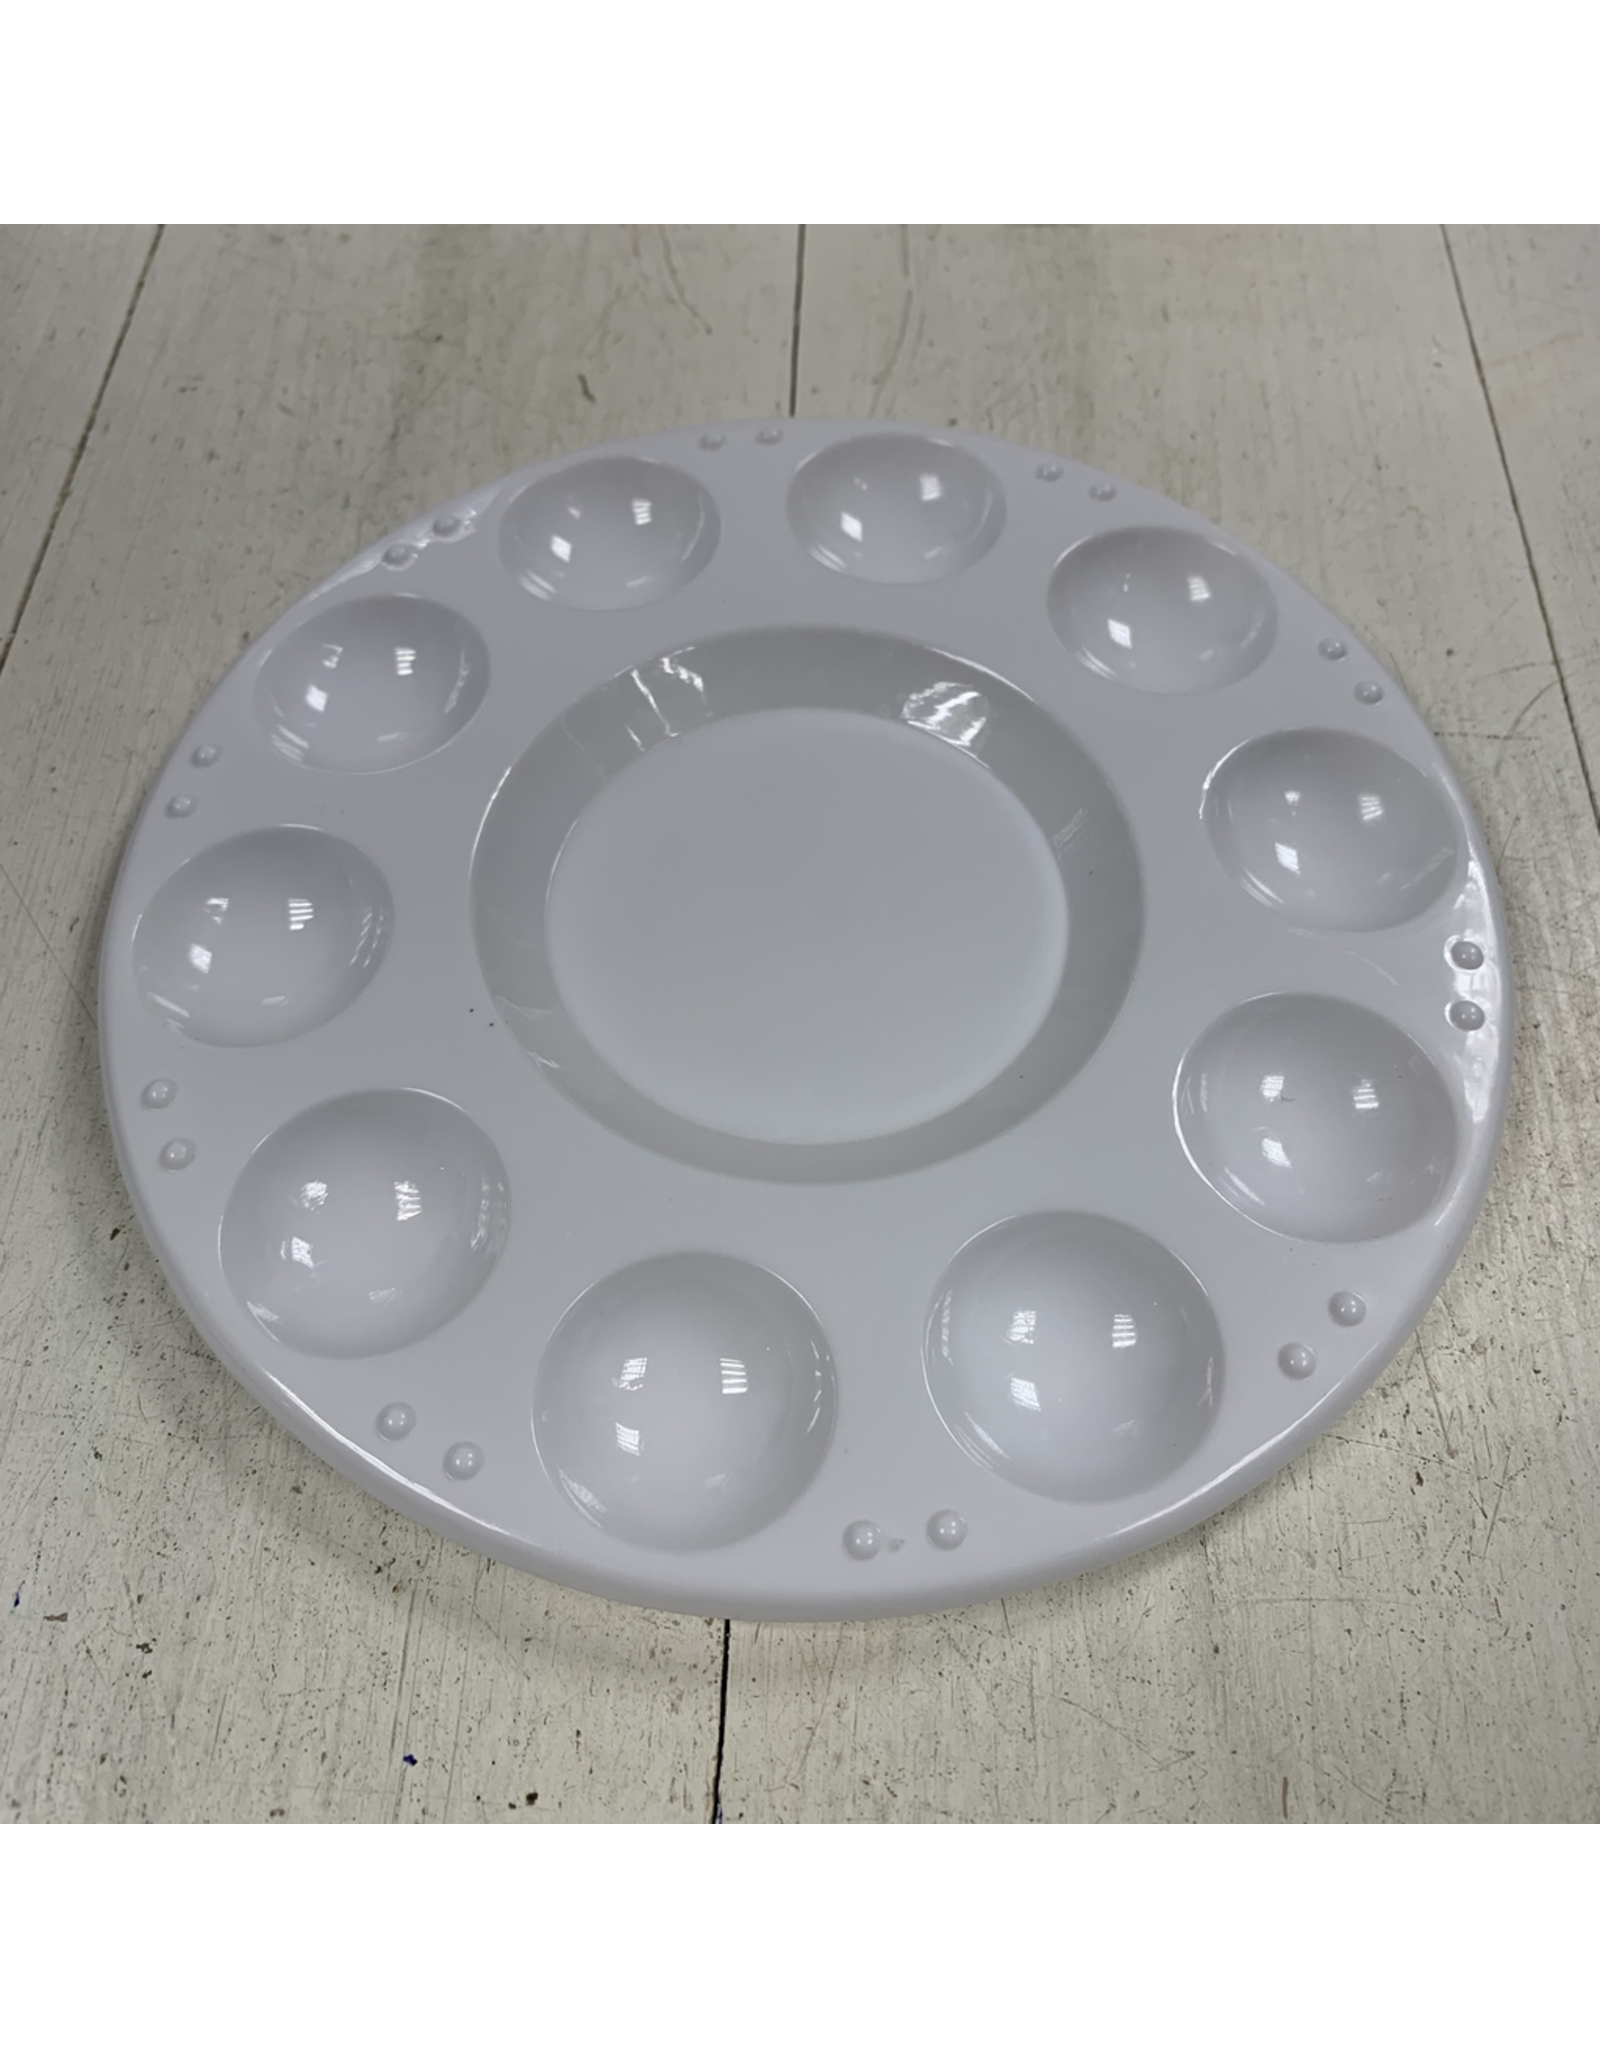 Royal & Langnickel 10 well round palette